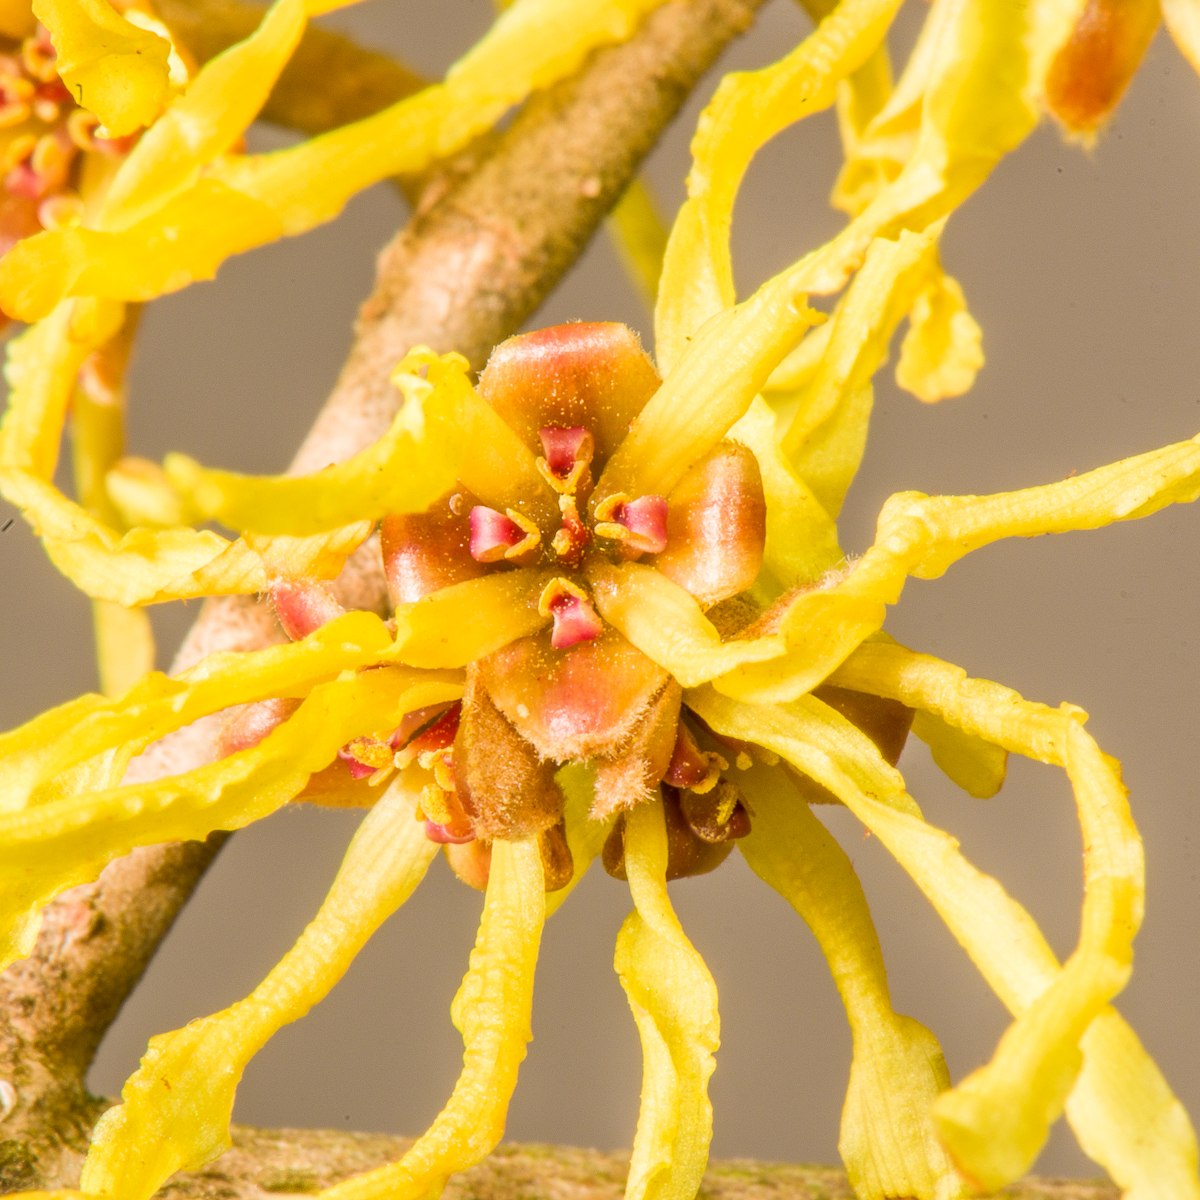 Flower of witchhazel